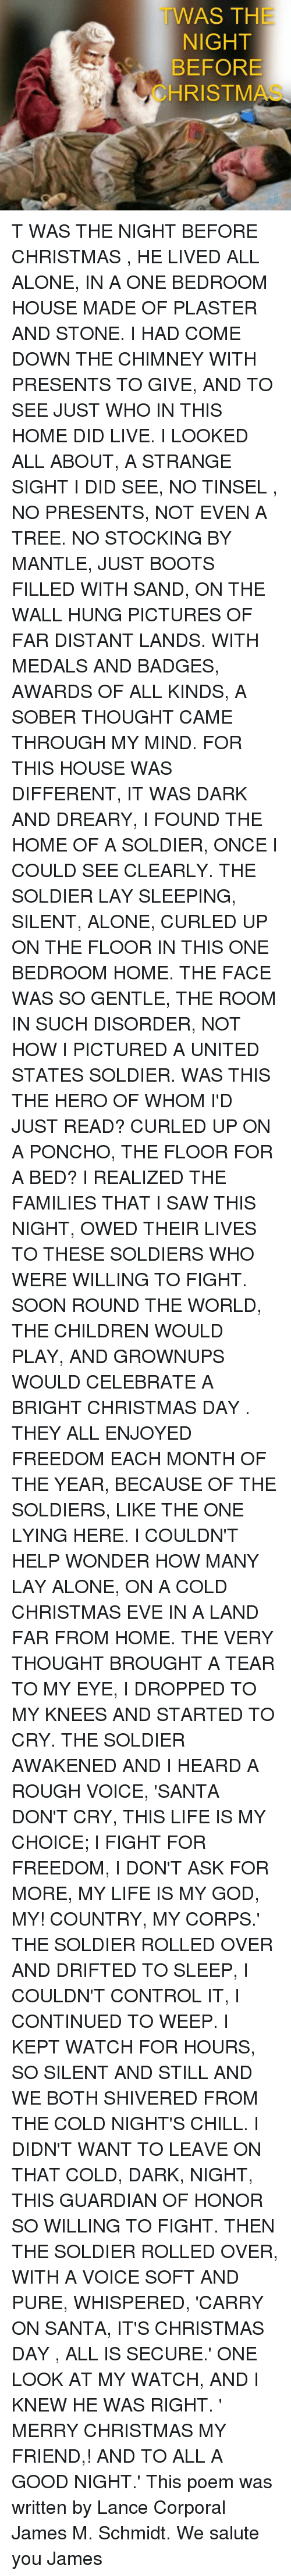 We Salute You: WAS THE  NIGHT  BEFORE  CHRISTM T WAS THE NIGHT BEFORE CHRISTMAS ,  HE LIVED ALL ALONE,  IN A ONE BEDROOM HOUSE MADE OF  PLASTER AND STONE.   I HAD COME DOWN THE CHIMNEY  WITH PRESENTS TO GIVE,  AND TO SEE JUST WHO  IN THIS HOME DID LIVE.   I LOOKED ALL ABOUT,  A STRANGE SIGHT I DID SEE,  NO TINSEL , NO PRESENTS,  NOT EVEN A TREE.   NO STOCKING BY MANTLE,  JUST BOOTS FILLED WITH SAND,  ON THE WALL HUNG PICTURES  OF FAR DISTANT LANDS.   WITH MEDALS AND BADGES,  AWARDS OF ALL KINDS,  A SOBER THOUGHT  CAME THROUGH MY MIND.   FOR THIS HOUSE WAS DIFFERENT,  IT WAS DARK AND DREARY,  I FOUND THE HOME OF A SOLDIER,  ONCE I COULD SEE CLEARLY.   THE SOLDIER LAY SLEEPING,  SILENT, ALONE,  CURLED UP ON THE FLOOR  IN THIS ONE BEDROOM HOME.   THE FACE WAS SO GENTLE,  THE ROOM IN SUCH DISORDER,  NOT HOW I PICTURED  A UNITED STATES SOLDIER.   WAS THIS THE HERO  OF WHOM I'D JUST READ?  CURLED UP ON A PONCHO,  THE FLOOR FOR A BED?   I REALIZED THE FAMILIES  THAT I SAW THIS NIGHT,  OWED THEIR LIVES TO THESE SOLDIERS  WHO WERE WILLING TO FIGHT.   SOON ROUND THE WORLD,  THE CHILDREN WOULD PLAY,  AND GROWNUPS WOULD CELEBRATE  A BRIGHT CHRISTMAS DAY .   THEY ALL ENJOYED FREEDOM  EACH MONTH OF THE YEAR,  BECAUSE OF THE SOLDIERS,  LIKE THE ONE LYING HERE.   I COULDN'T HELP WONDER  HOW MANY LAY ALONE,  ON A COLD CHRISTMAS EVE  IN A LAND FAR FROM HOME.   THE VERY THOUGHT  BROUGHT A TEAR TO MY EYE,  I DROPPED TO MY KNEES  AND STARTED TO CRY.   THE SOLDIER AWAKENED  AND I HEARD A ROUGH VOICE,  'SANTA DON'T CRY,  THIS LIFE IS MY CHOICE;   I FIGHT FOR FREEDOM,  I DON'T ASK FOR MORE,  MY LIFE IS MY GOD,  MY! COUNTRY, MY CORPS.'   THE SOLDIER ROLLED OVER  AND DRIFTED TO SLEEP,  I COULDN'T CONTROL IT,  I CONTINUED TO WEEP.   I KEPT WATCH FOR HOURS,  SO SILENT AND STILL AND WE BOTH SHIVERED  FROM THE COLD NIGHT'S CHILL.   I DIDN'T WANT TO LEAVE  ON THAT COLD, DARK, NIGHT,  THIS GUARDIAN OF HONOR  SO WILLING TO FIGHT.   THEN THE SOLDIER ROLLED OVER,  WITH A VOICE SOFT AND PURE,  WHISPER